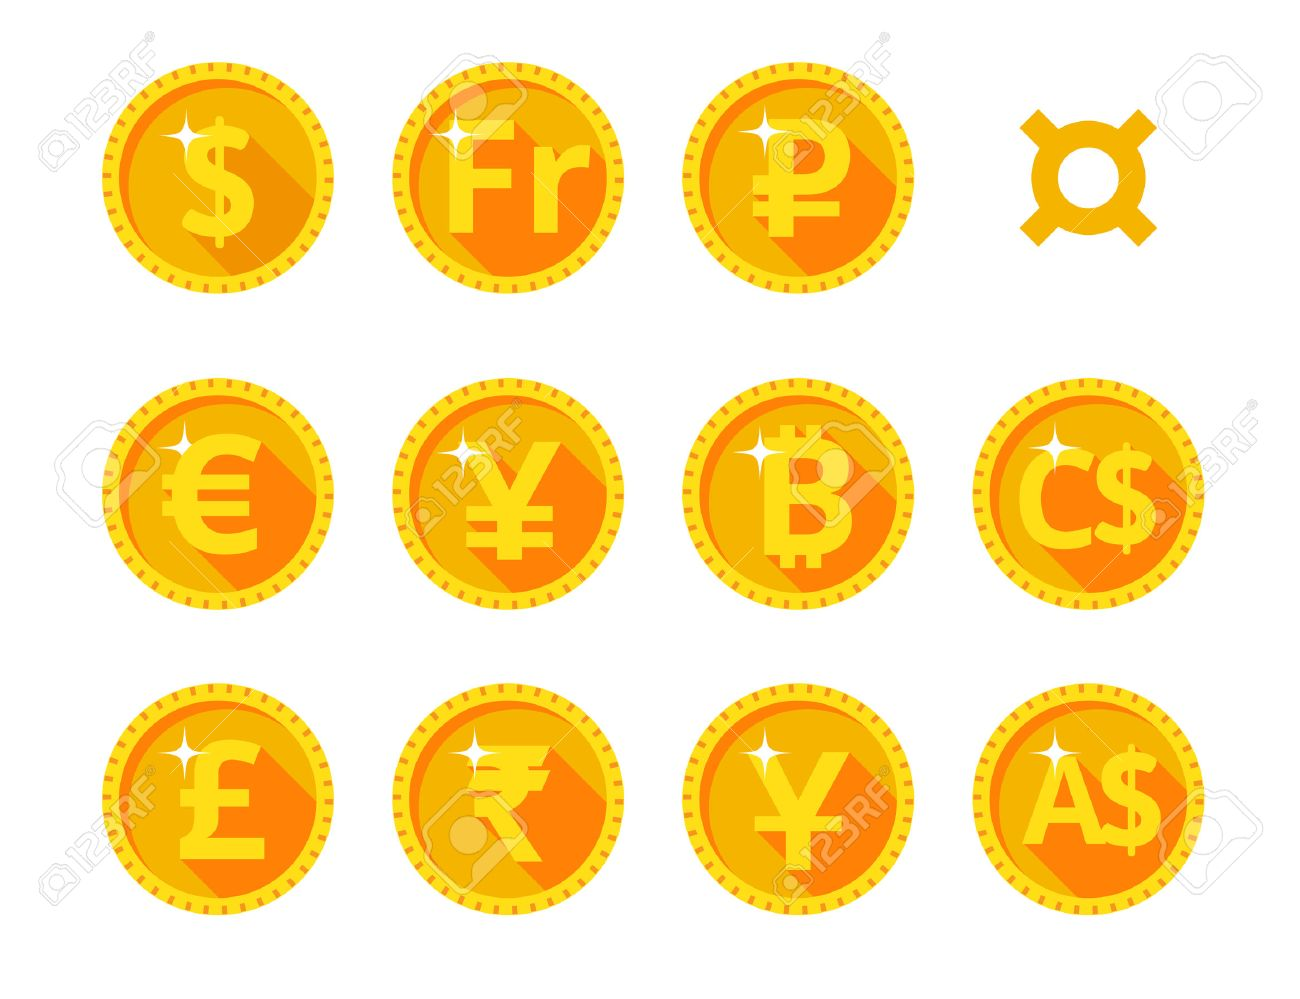 Rupee Stock Photos Royalty Free Rupee Images